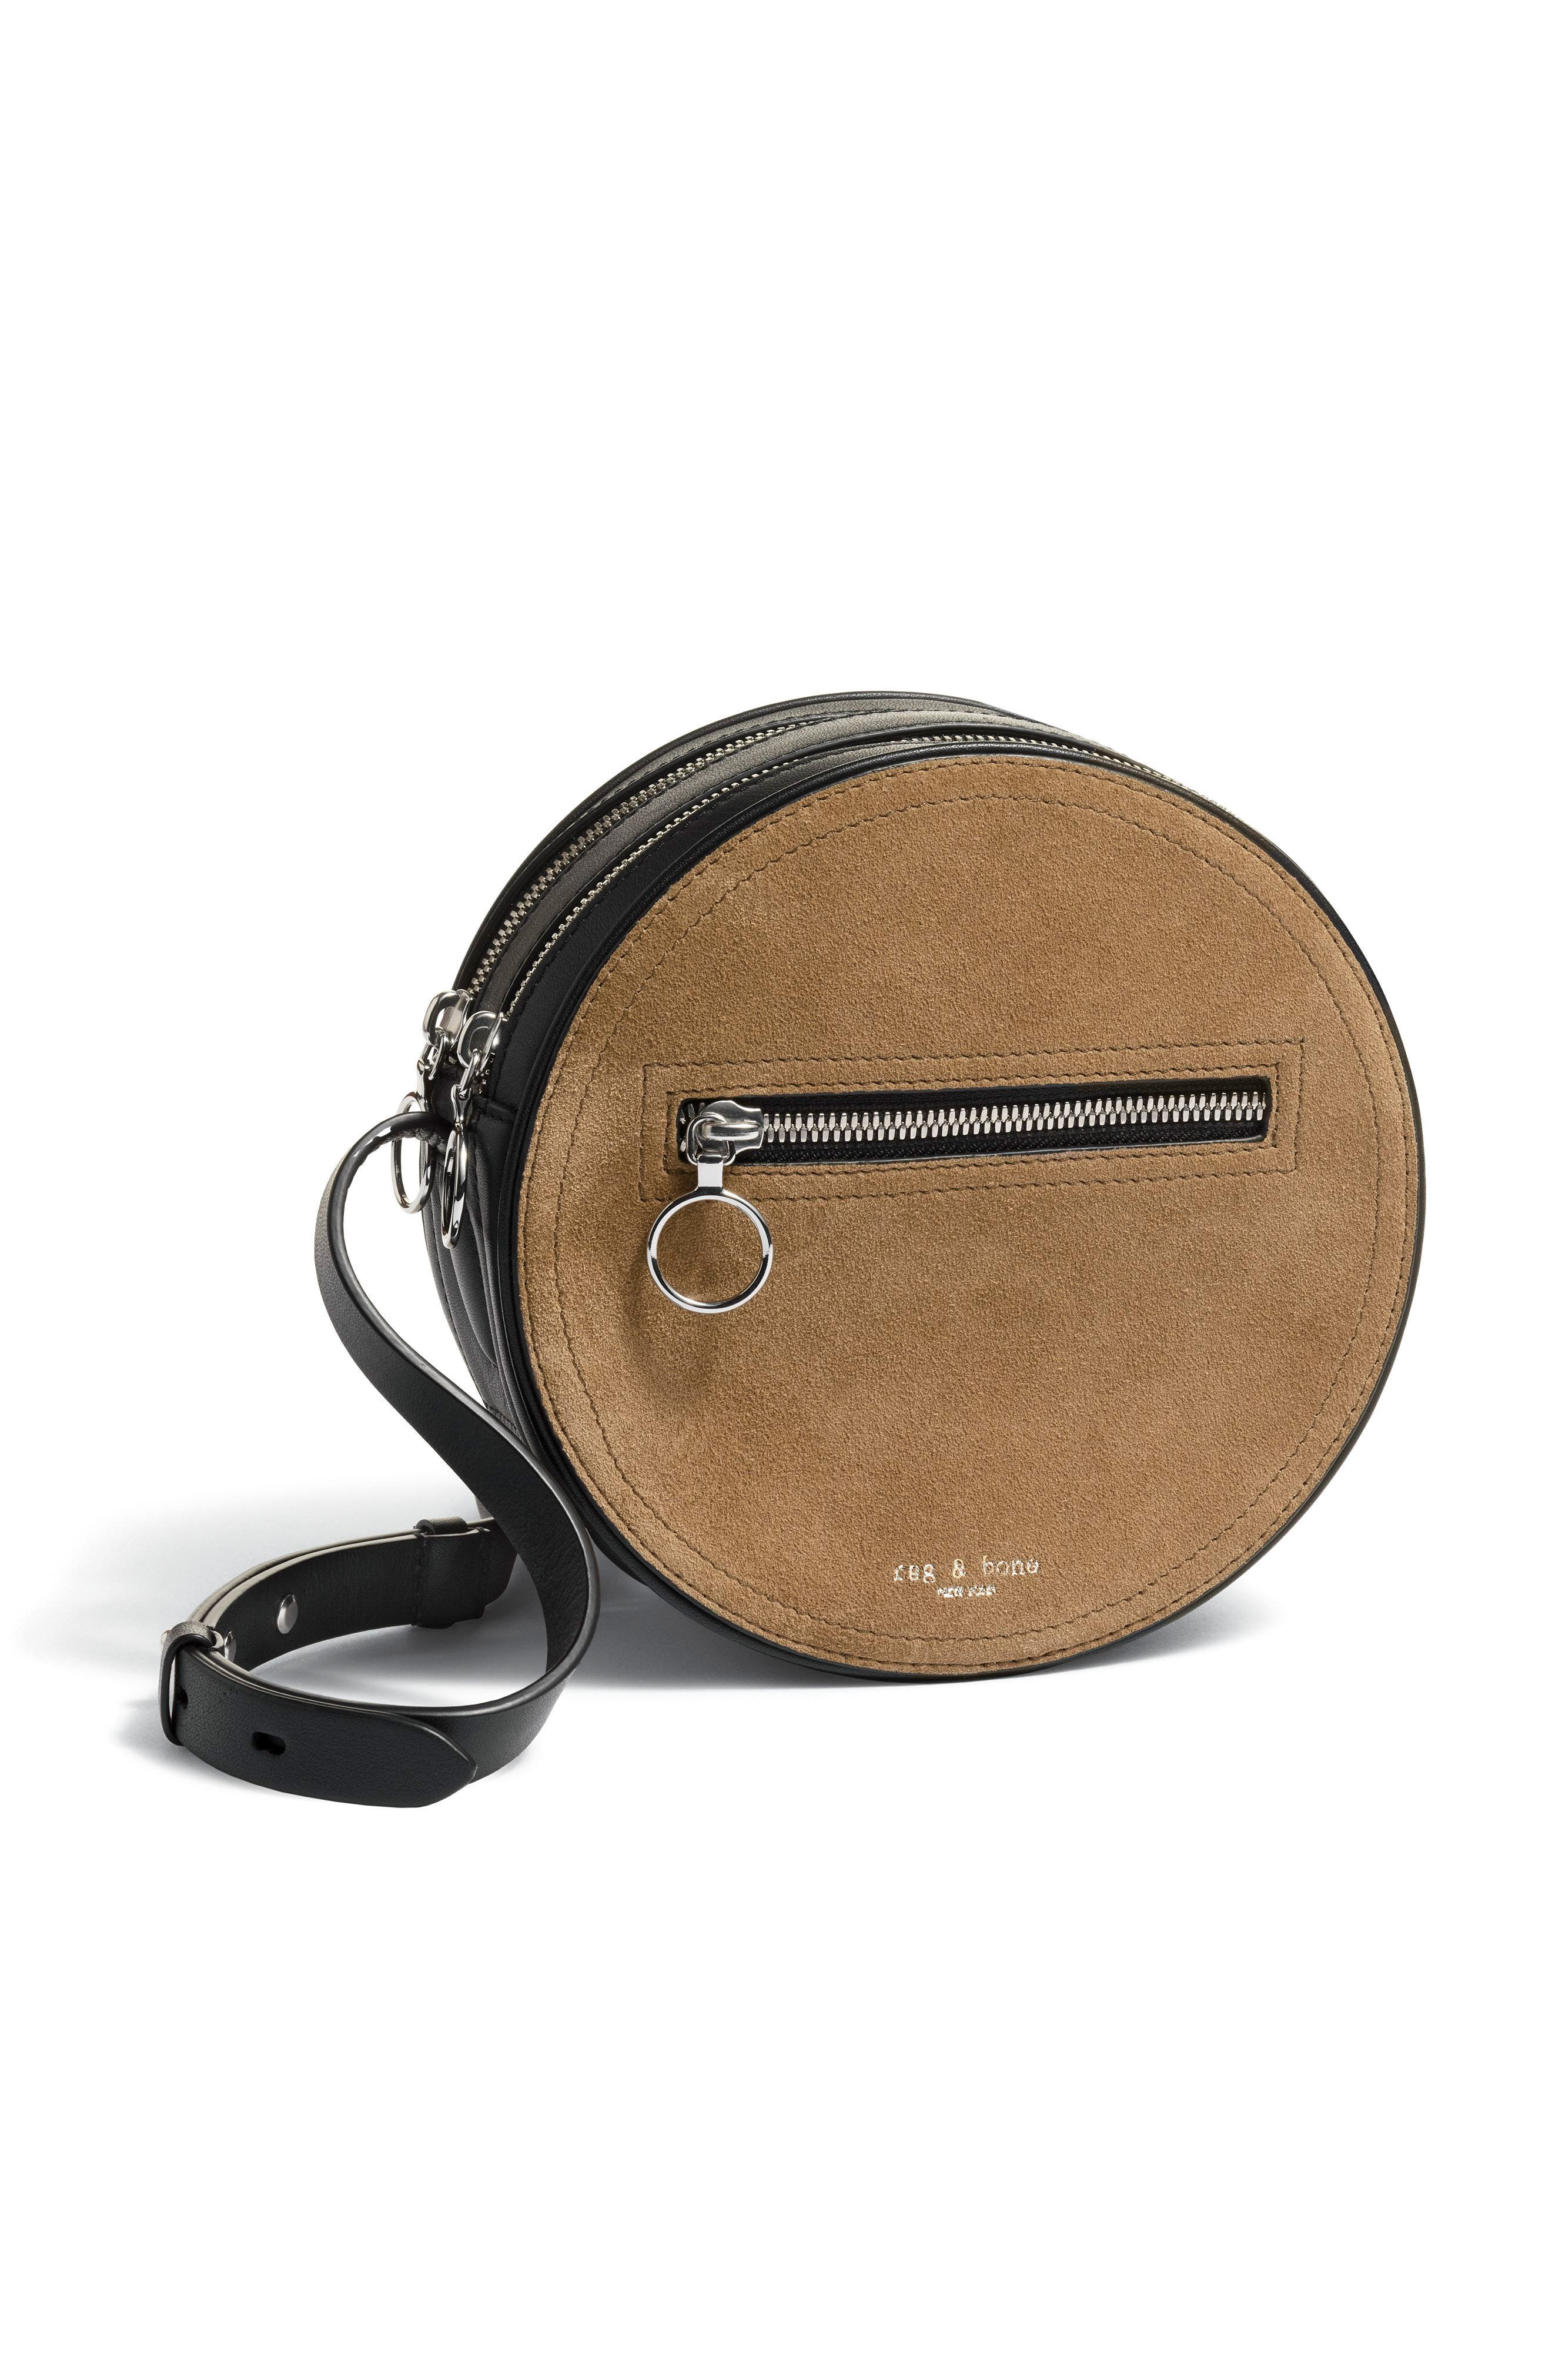 Suede & Leather Circle Crossbody Bag,                             Alternate thumbnail 9, color,                             200